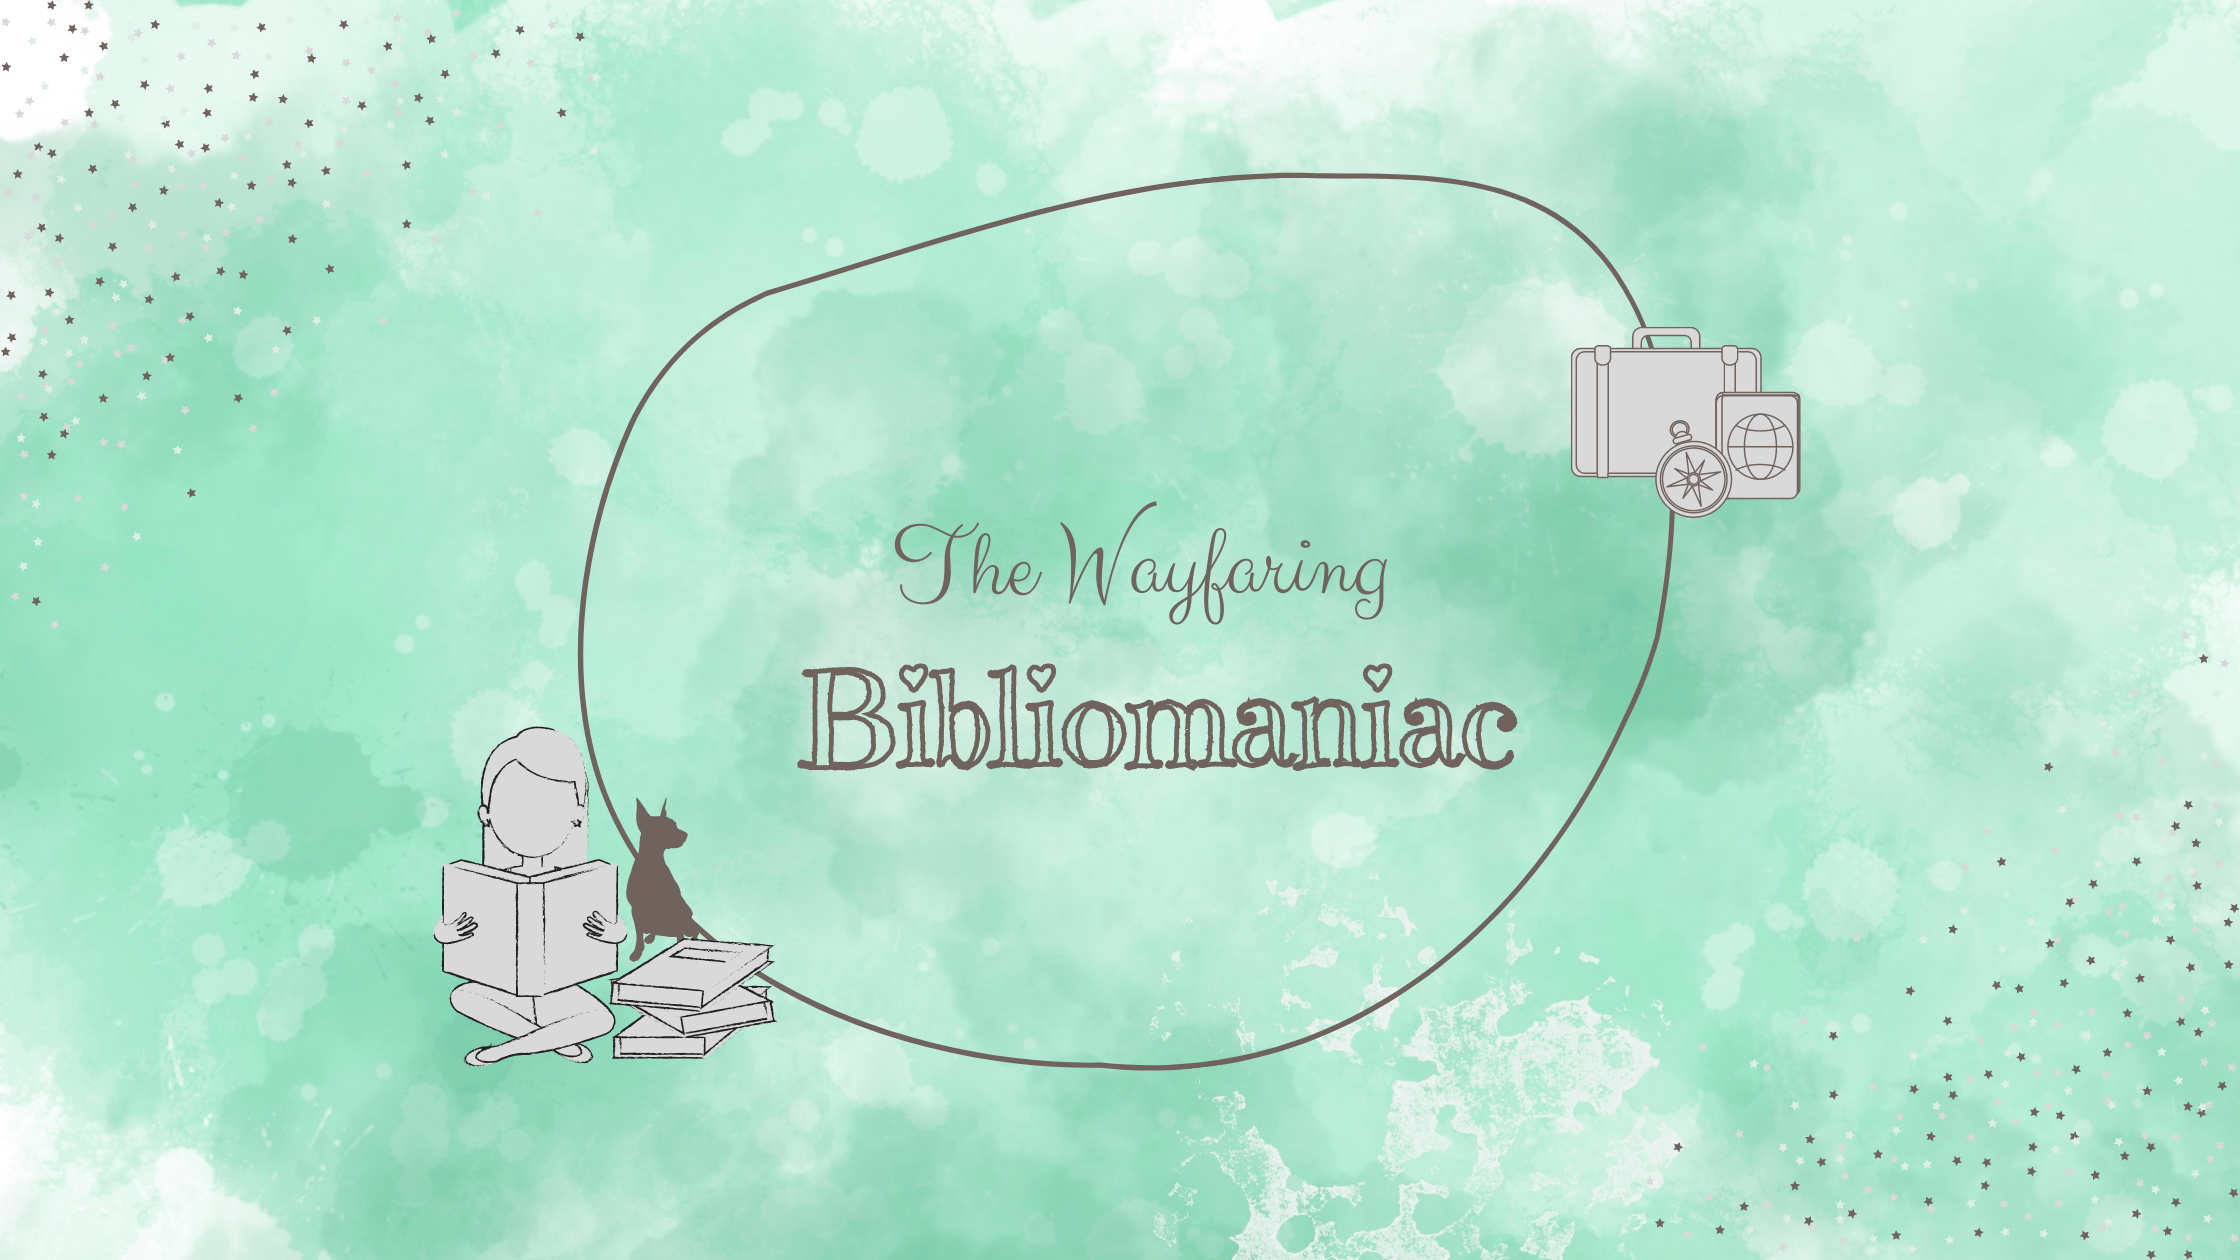 The Wayfaring Bibliomaniac